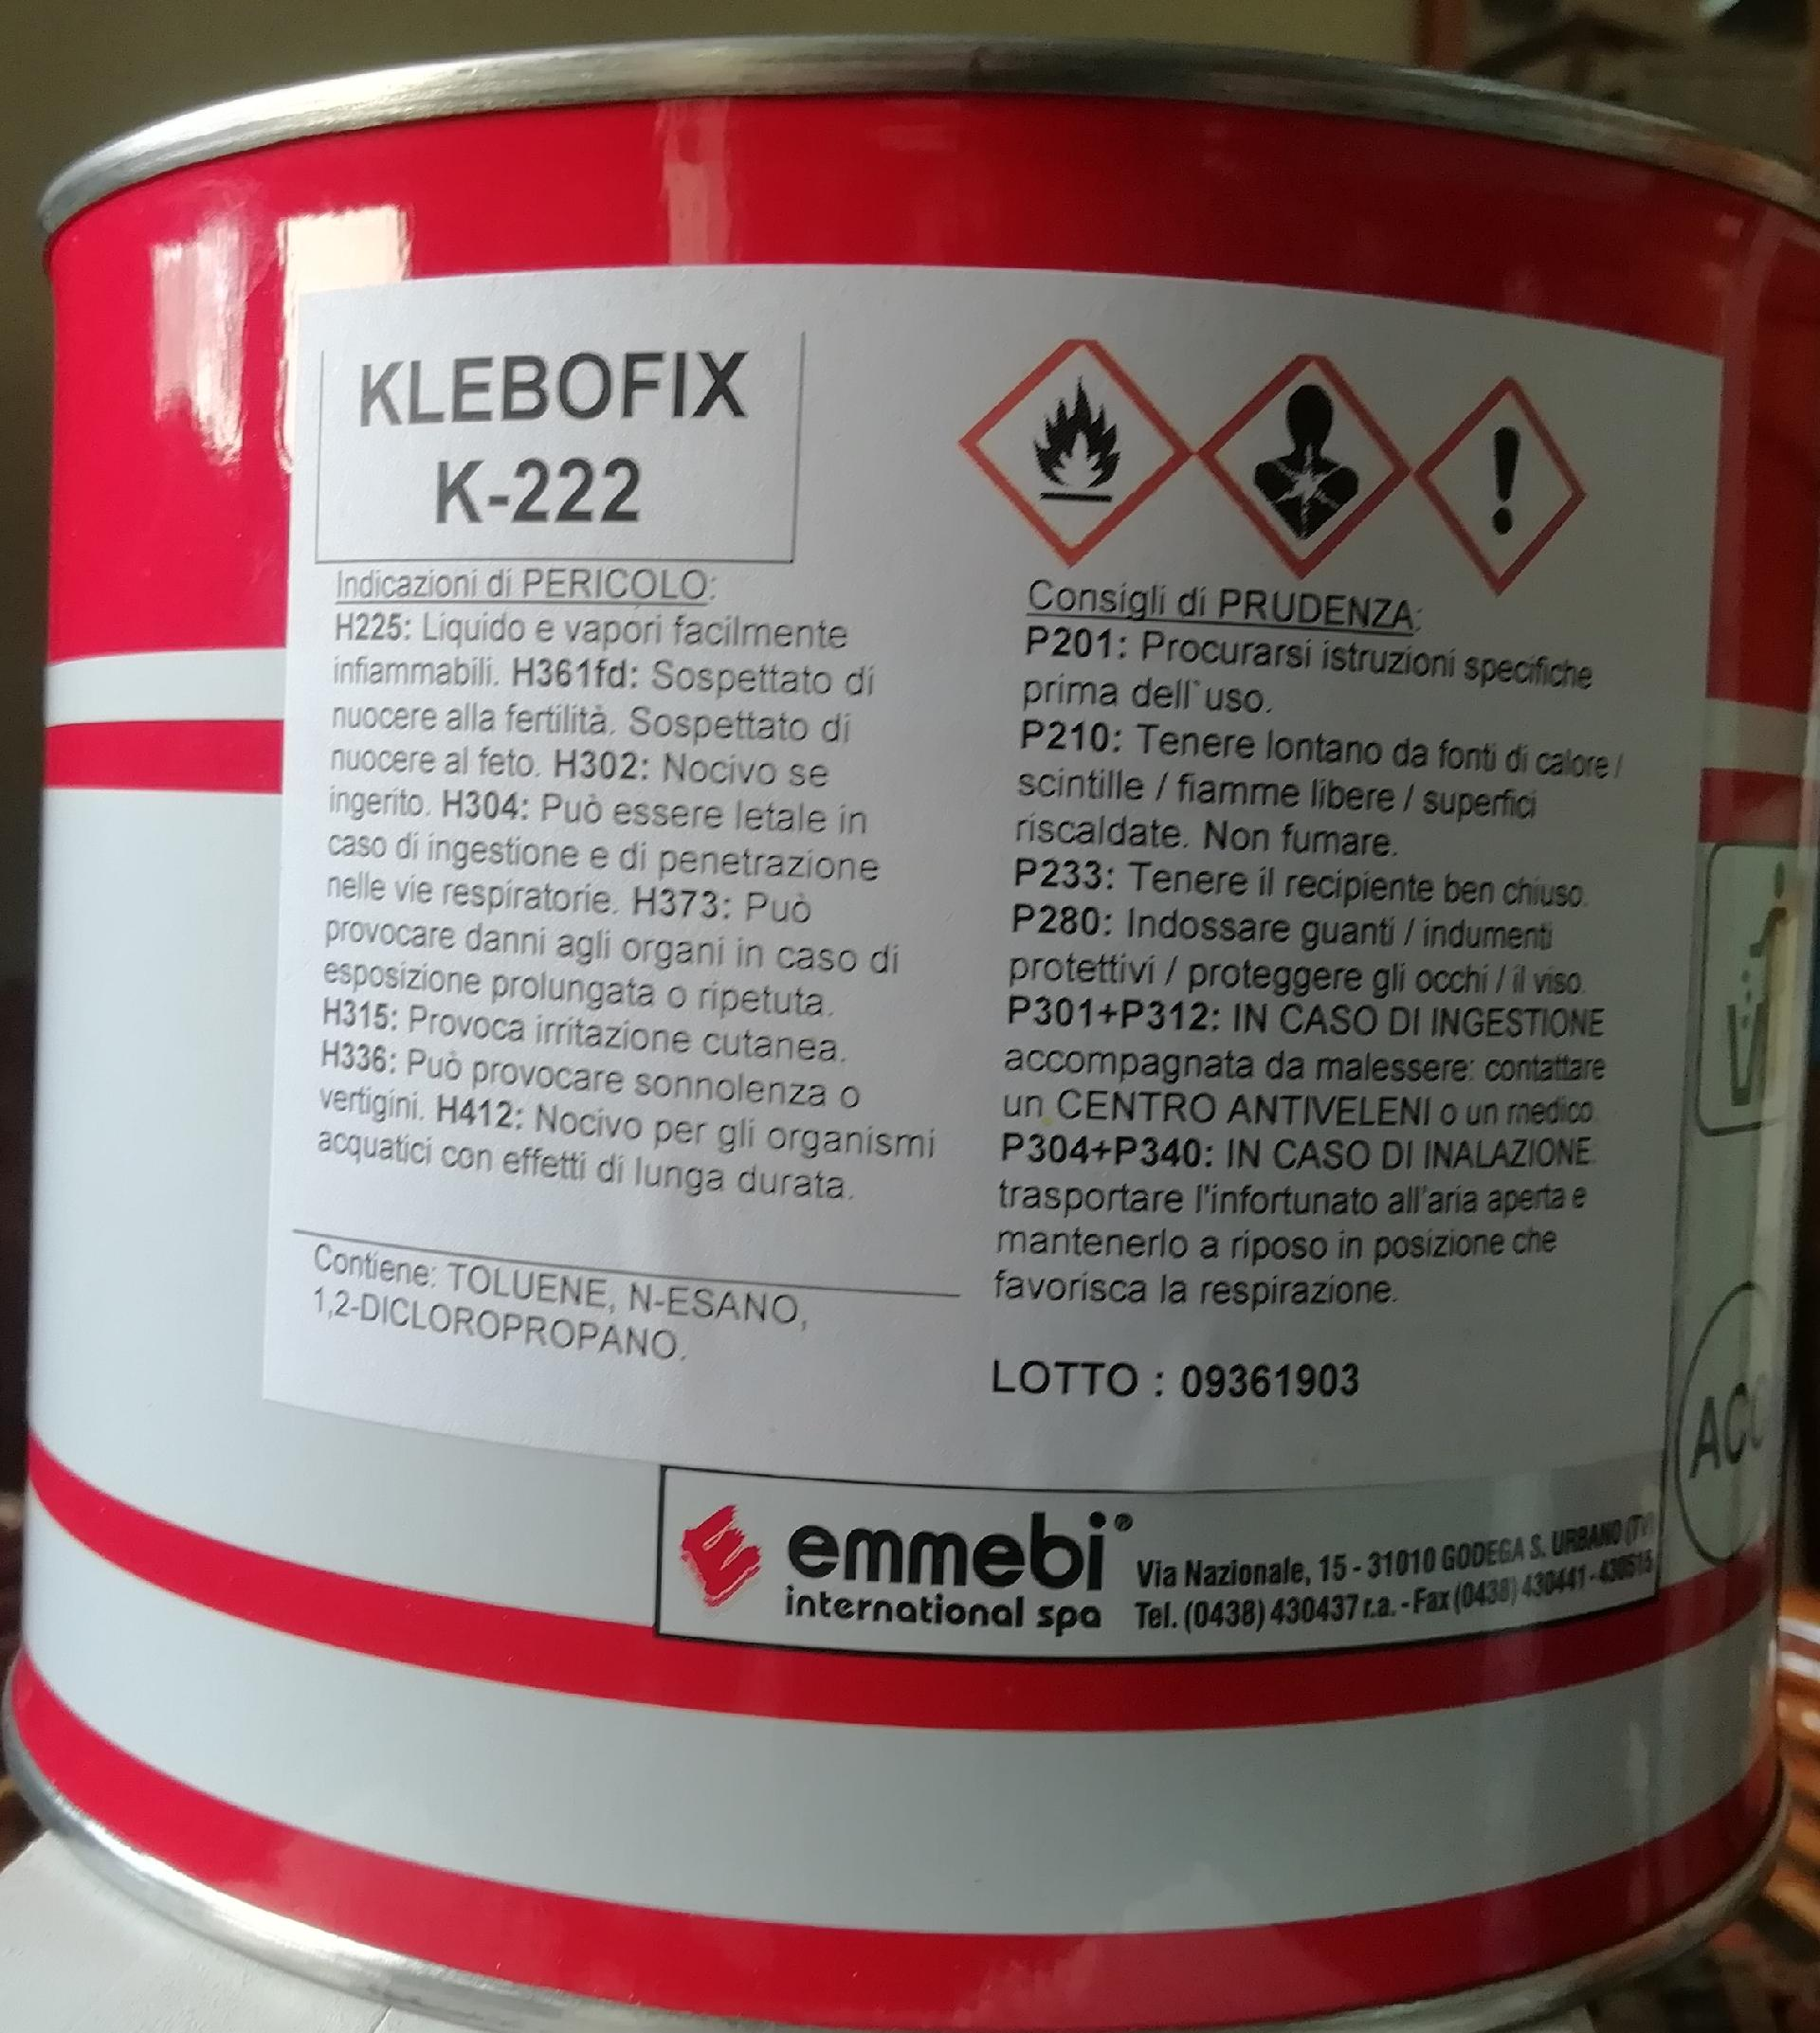 Colla Klebofix Emmebi International K-222